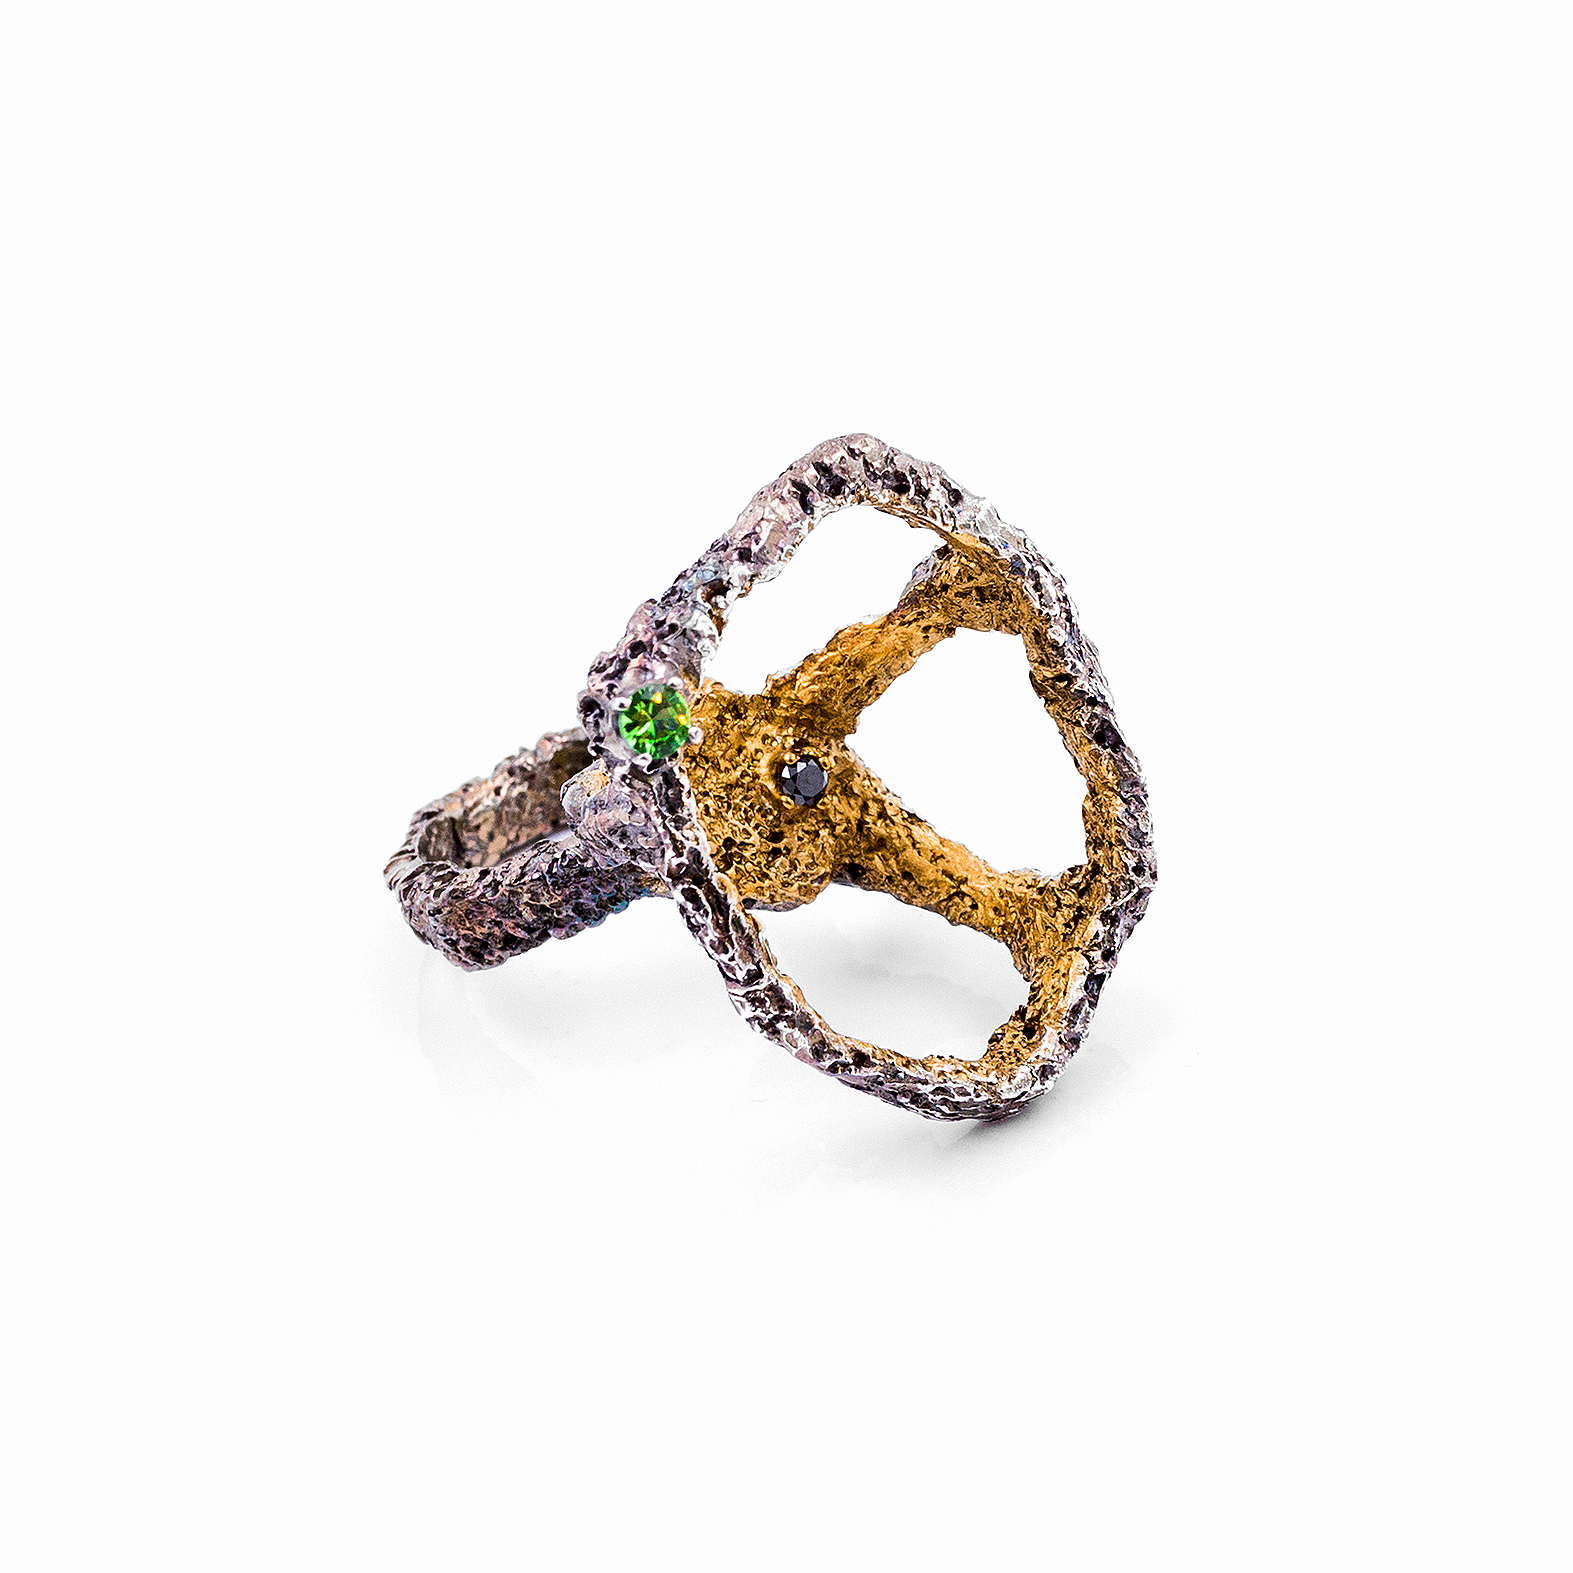 Open Island Ring | Sterling silver, tsavorite garnet, black diamond.